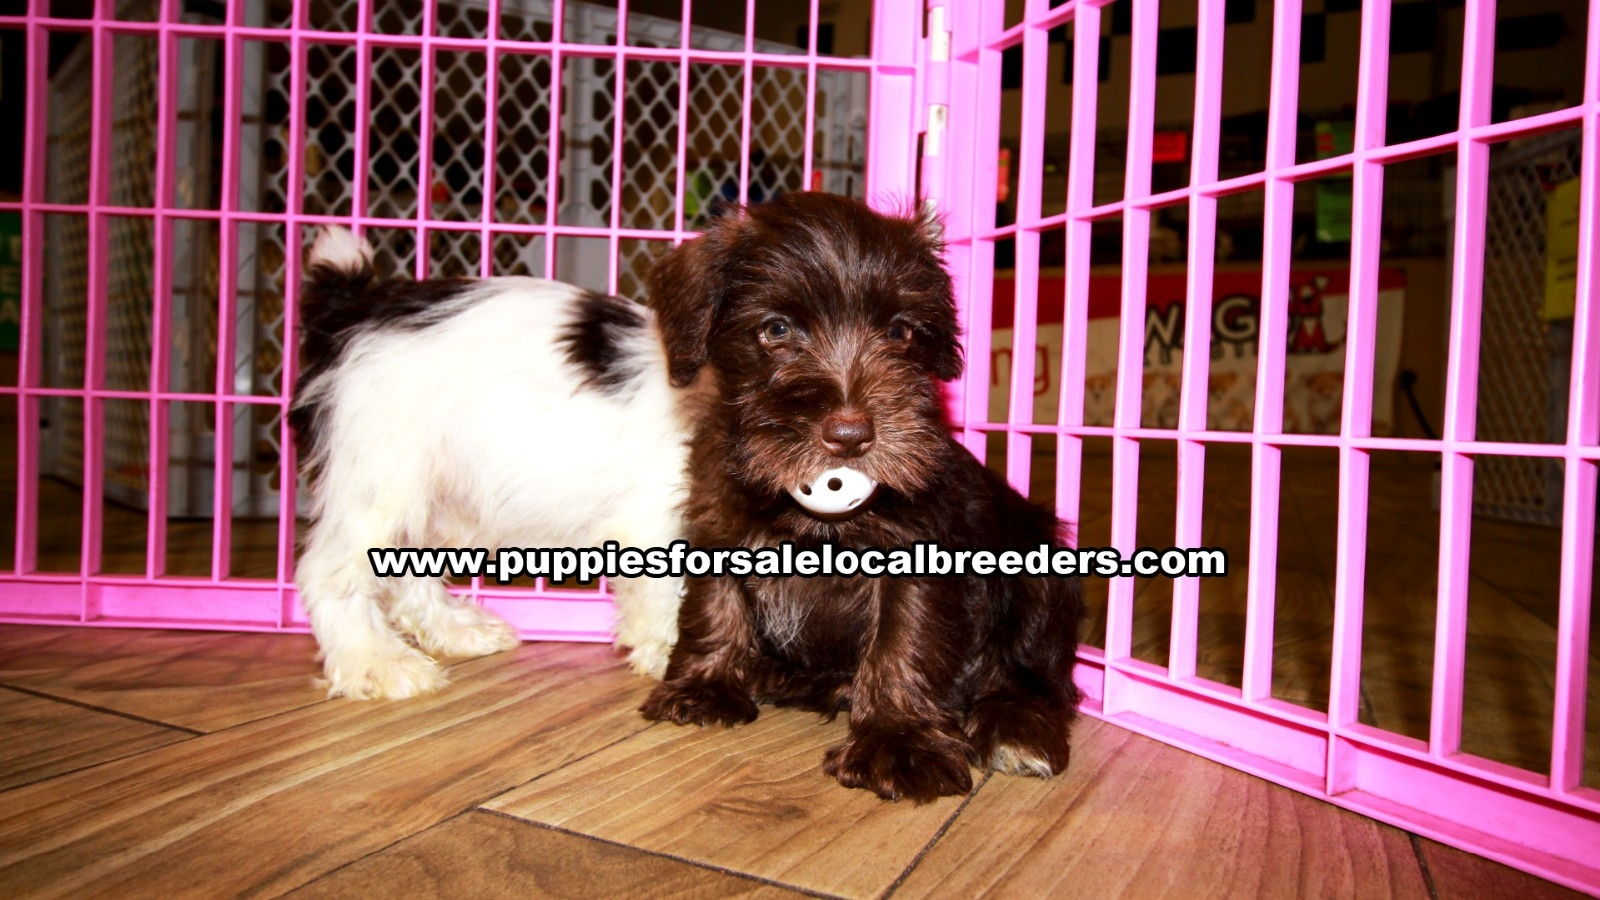 Chocolate Mini Schnauzer, Puppies For Sale In Georgia, Local Breeders, Near Atlanta, Ga